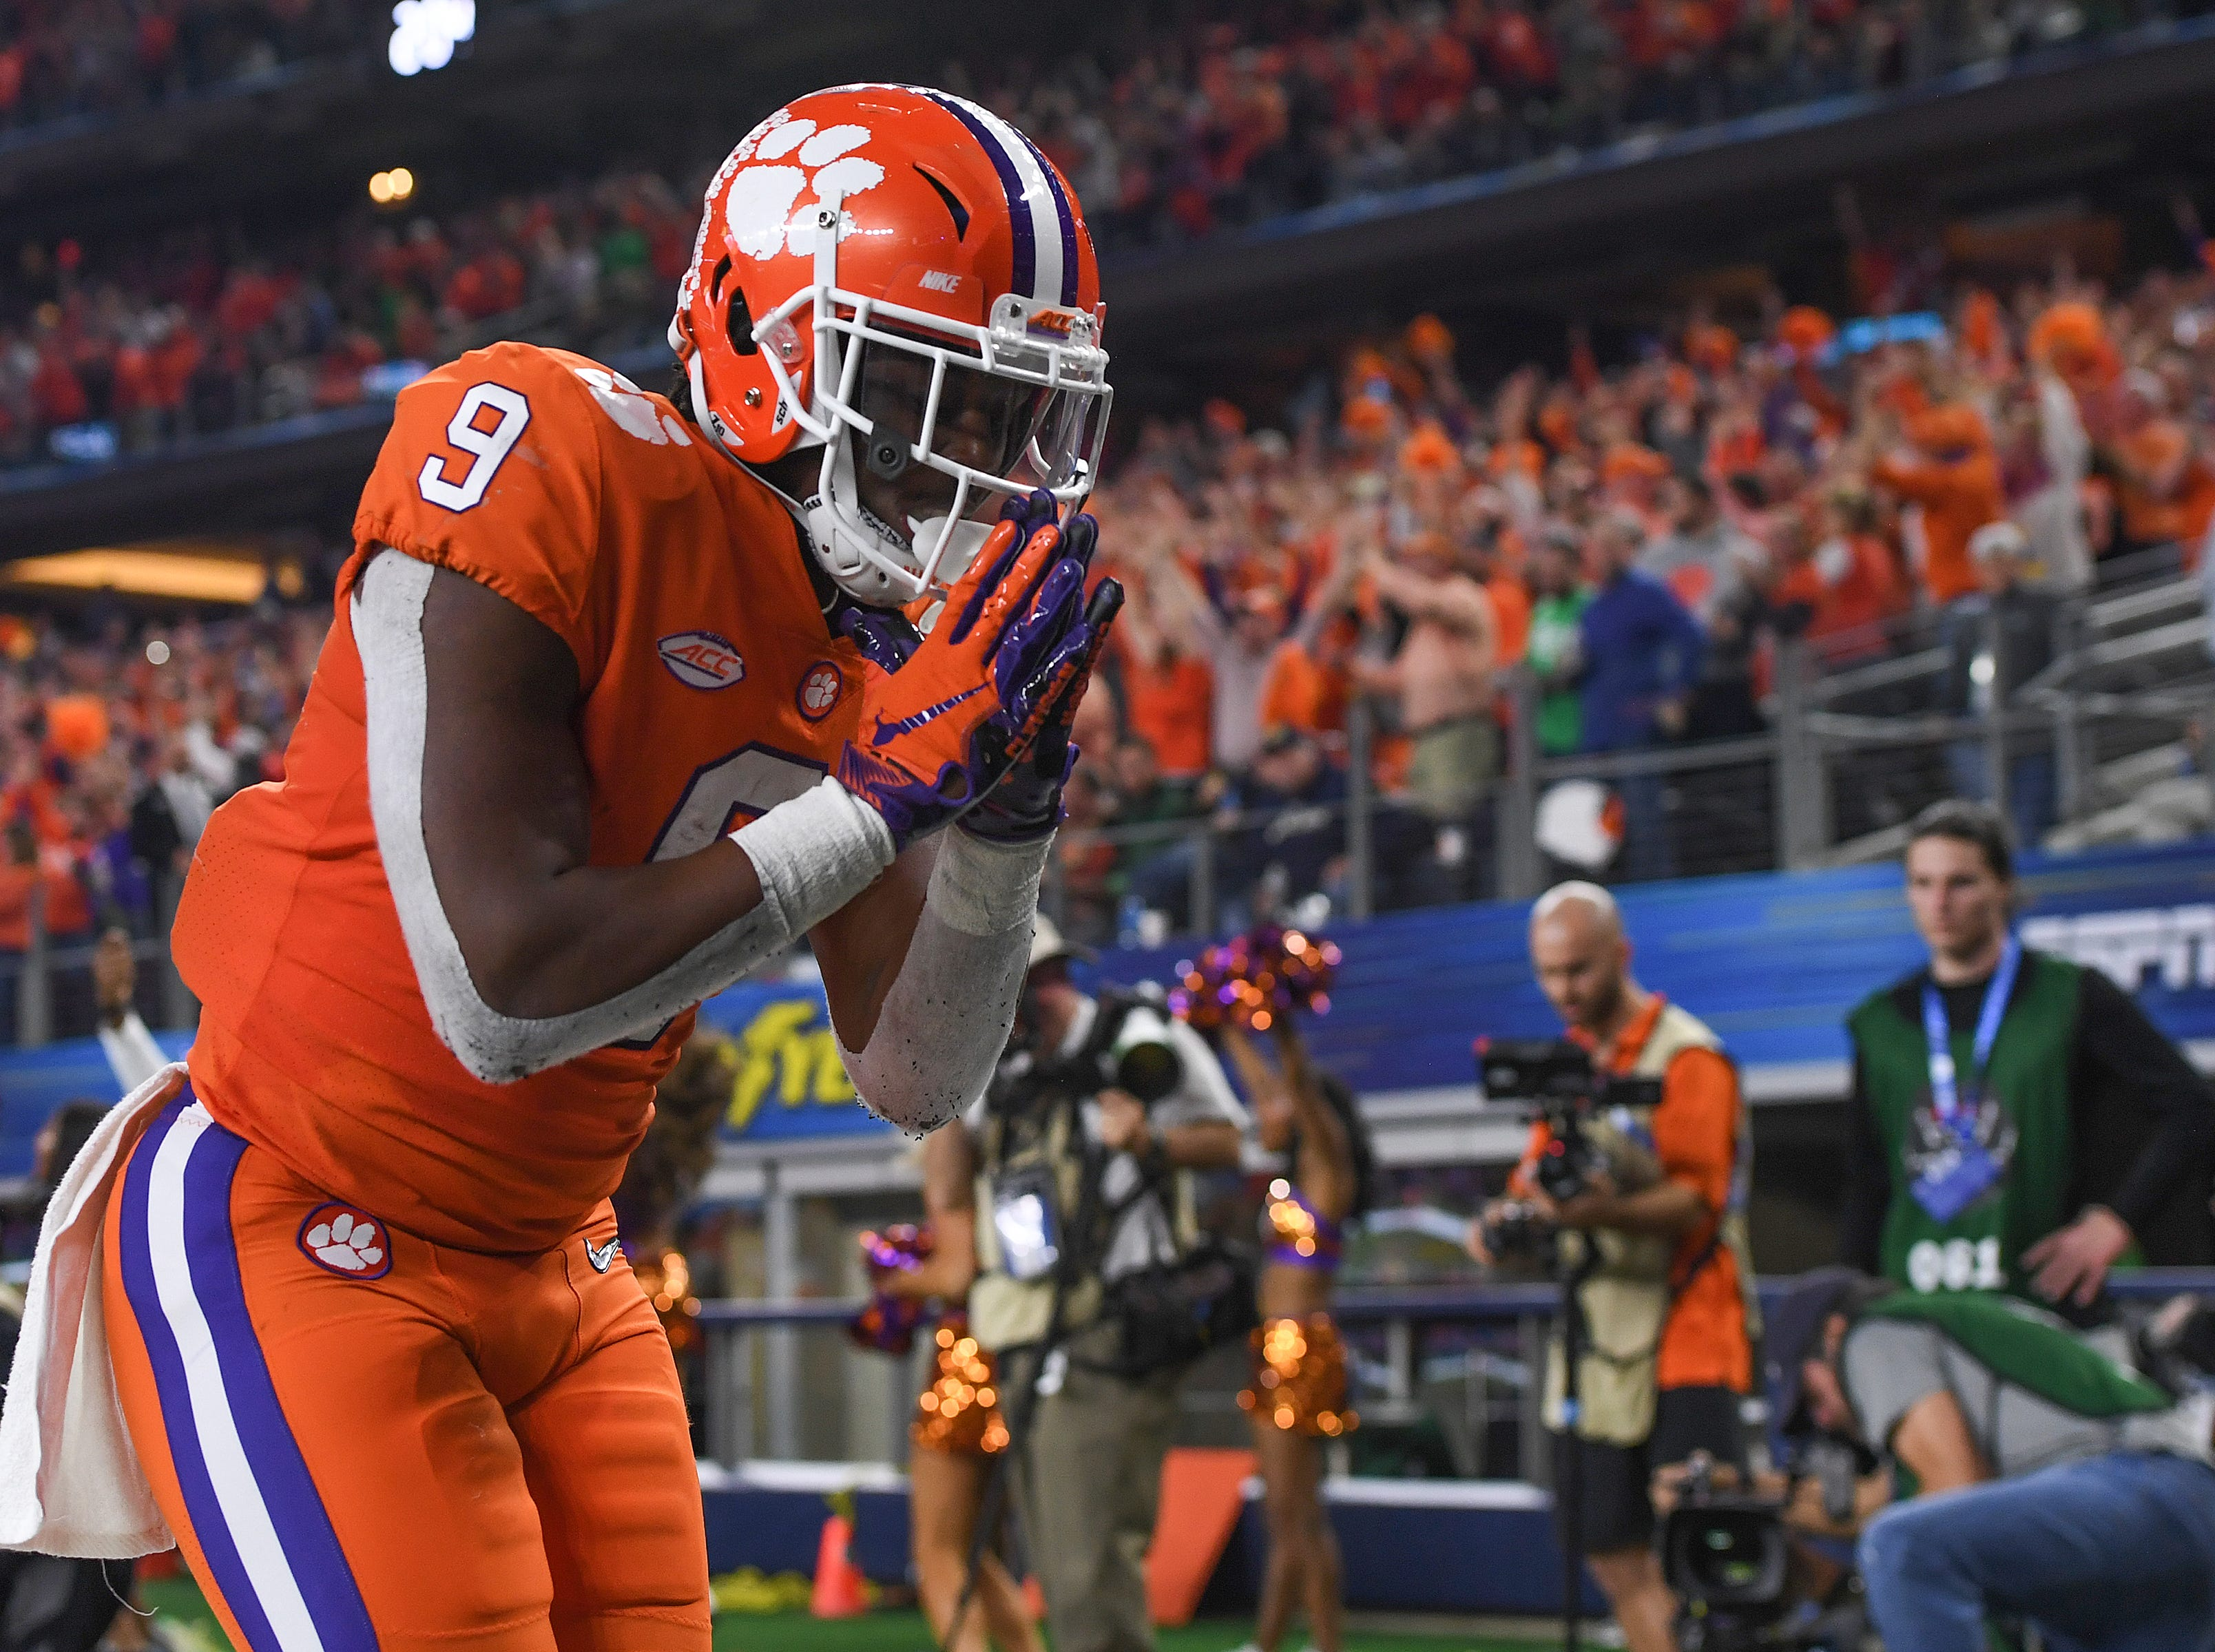 Clemson running back Travis Etienne (9) bows after scoring on a 62 yard TD carry against Notre Dame during the 3rd quarter of the Goodyear Cotton Bowl at AT&T stadium in Arlington, TX Saturday, December 29, 2018.